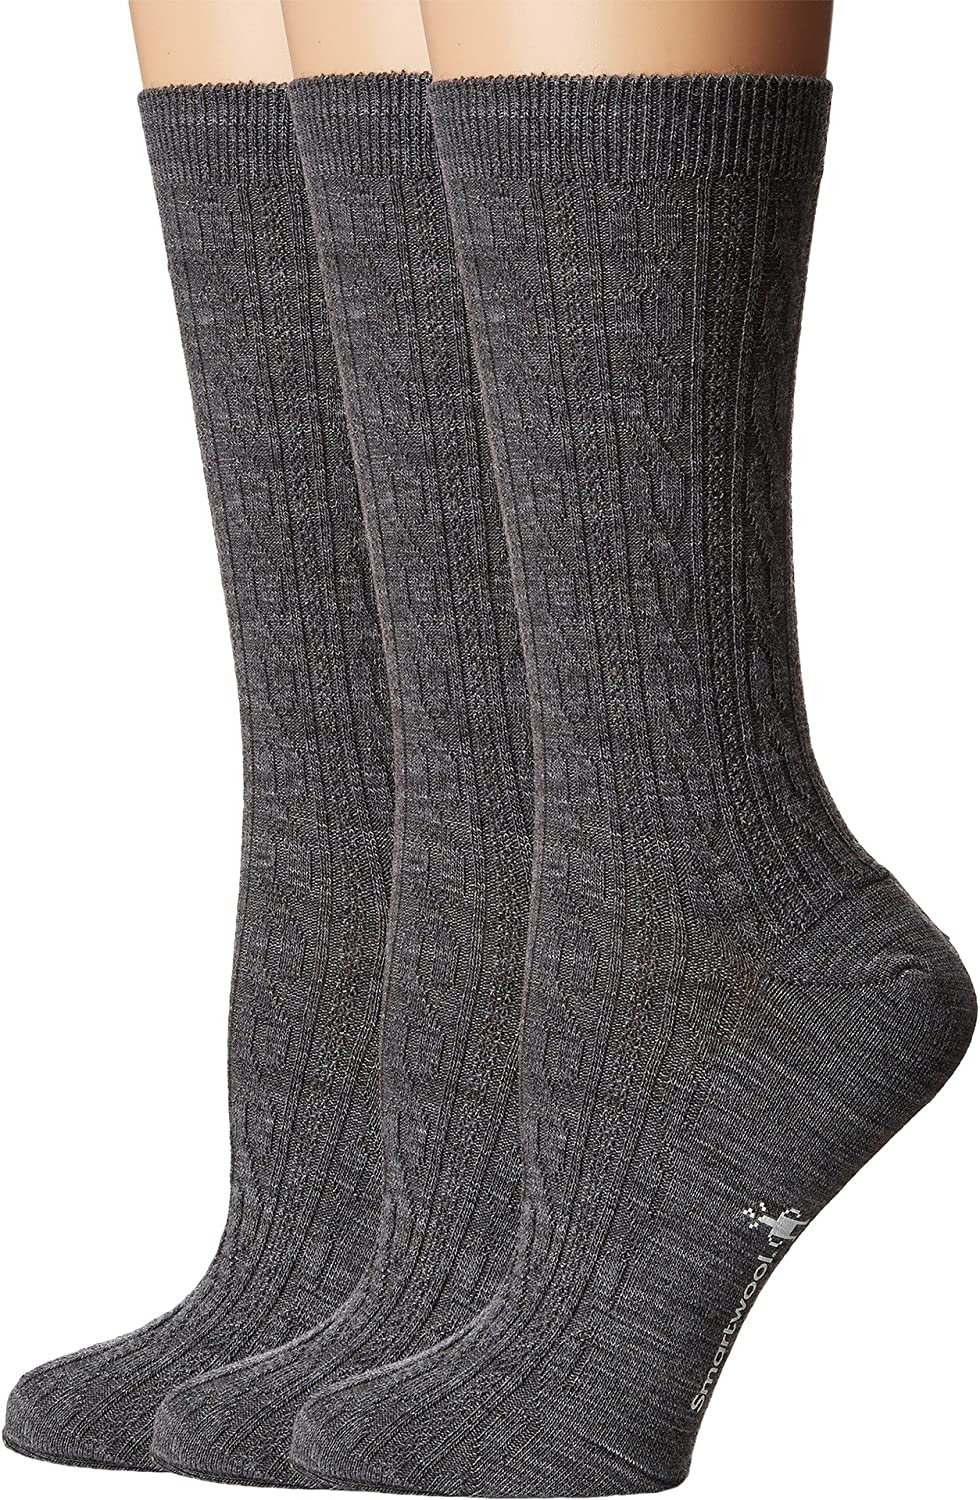 67791f33a762f Smartwool Women's Cable 3-Pack at Amazon Women's Clothing store: